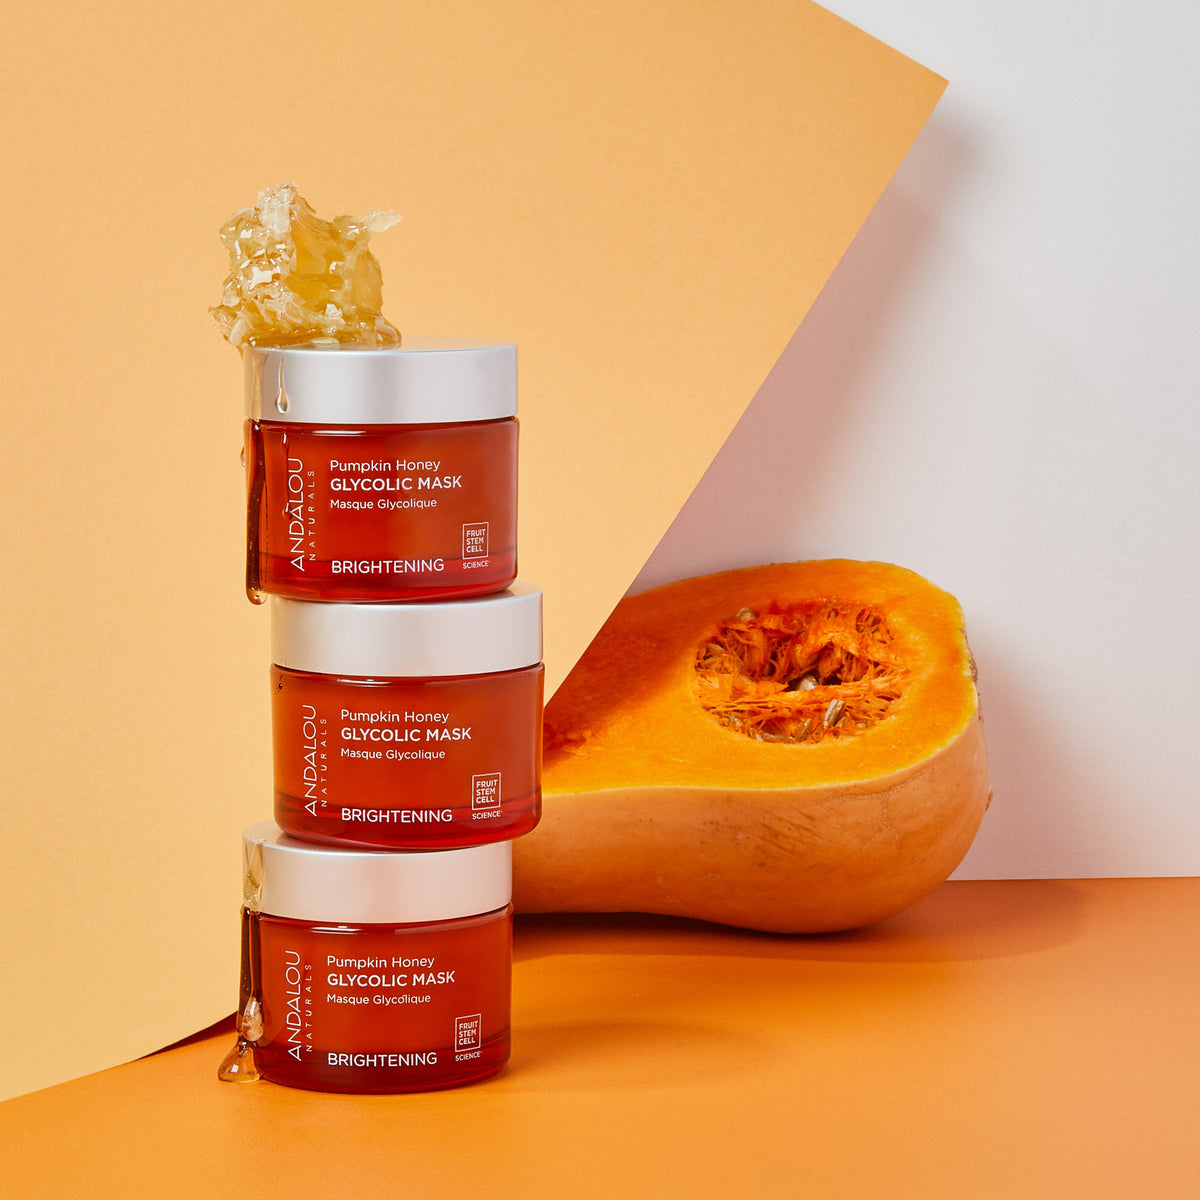 tower of Andalou Naturals Brightening Pumpkin Honey Glycolic Mask jars with honeycomb and half of a butternut squash